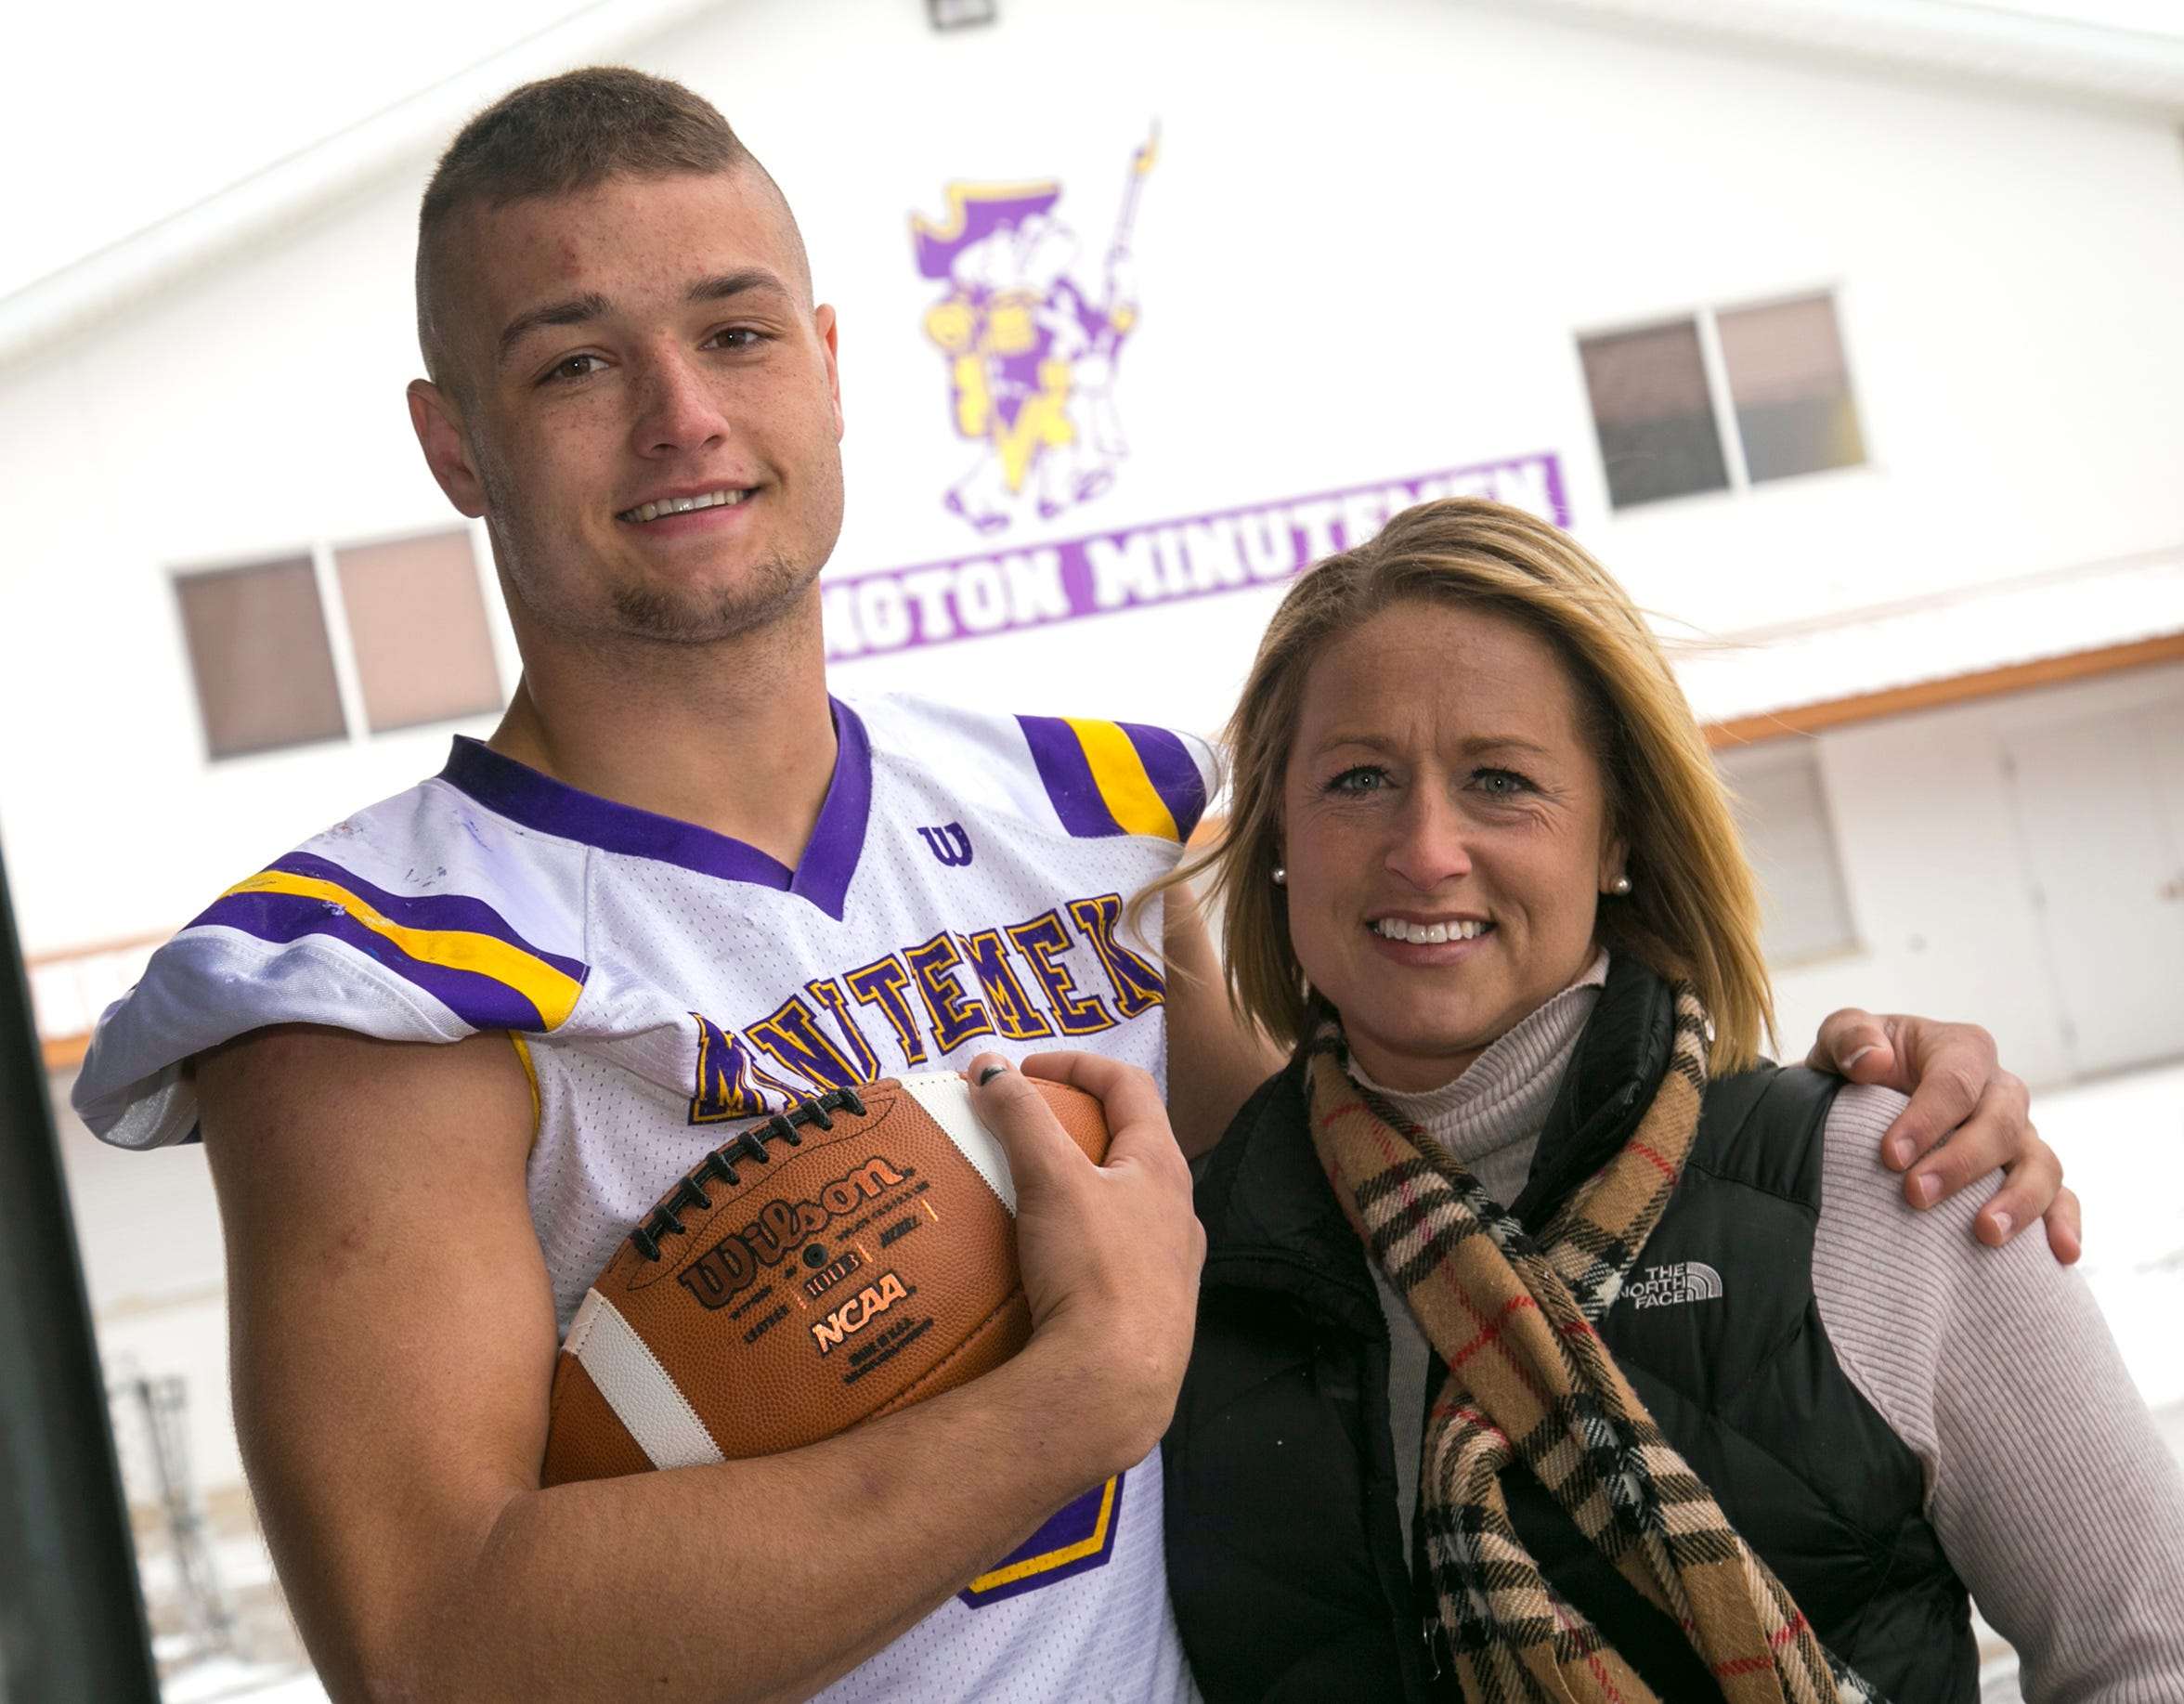 Lexington football player Cade Stover with his mom, Chelsi. Cade has been named Ohio's 2018 Mr. Football.